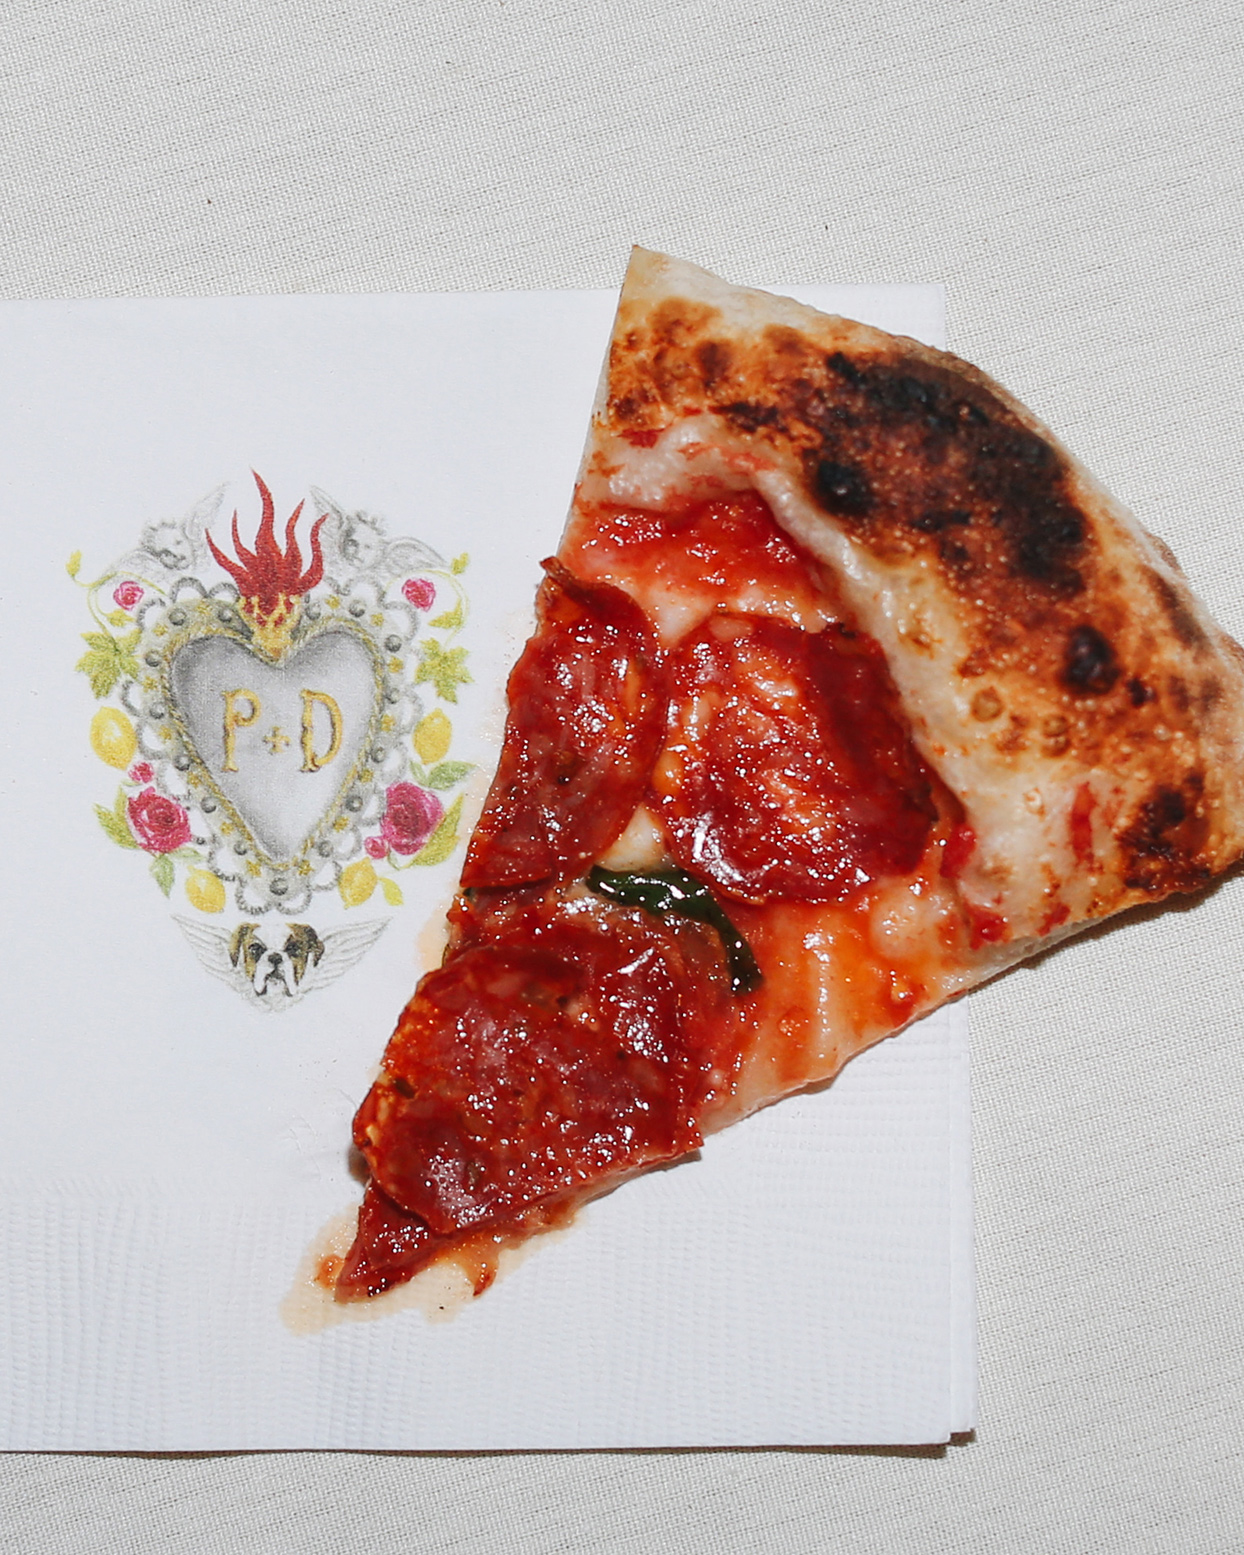 pia davide wedding pizza slice on napkin with crest